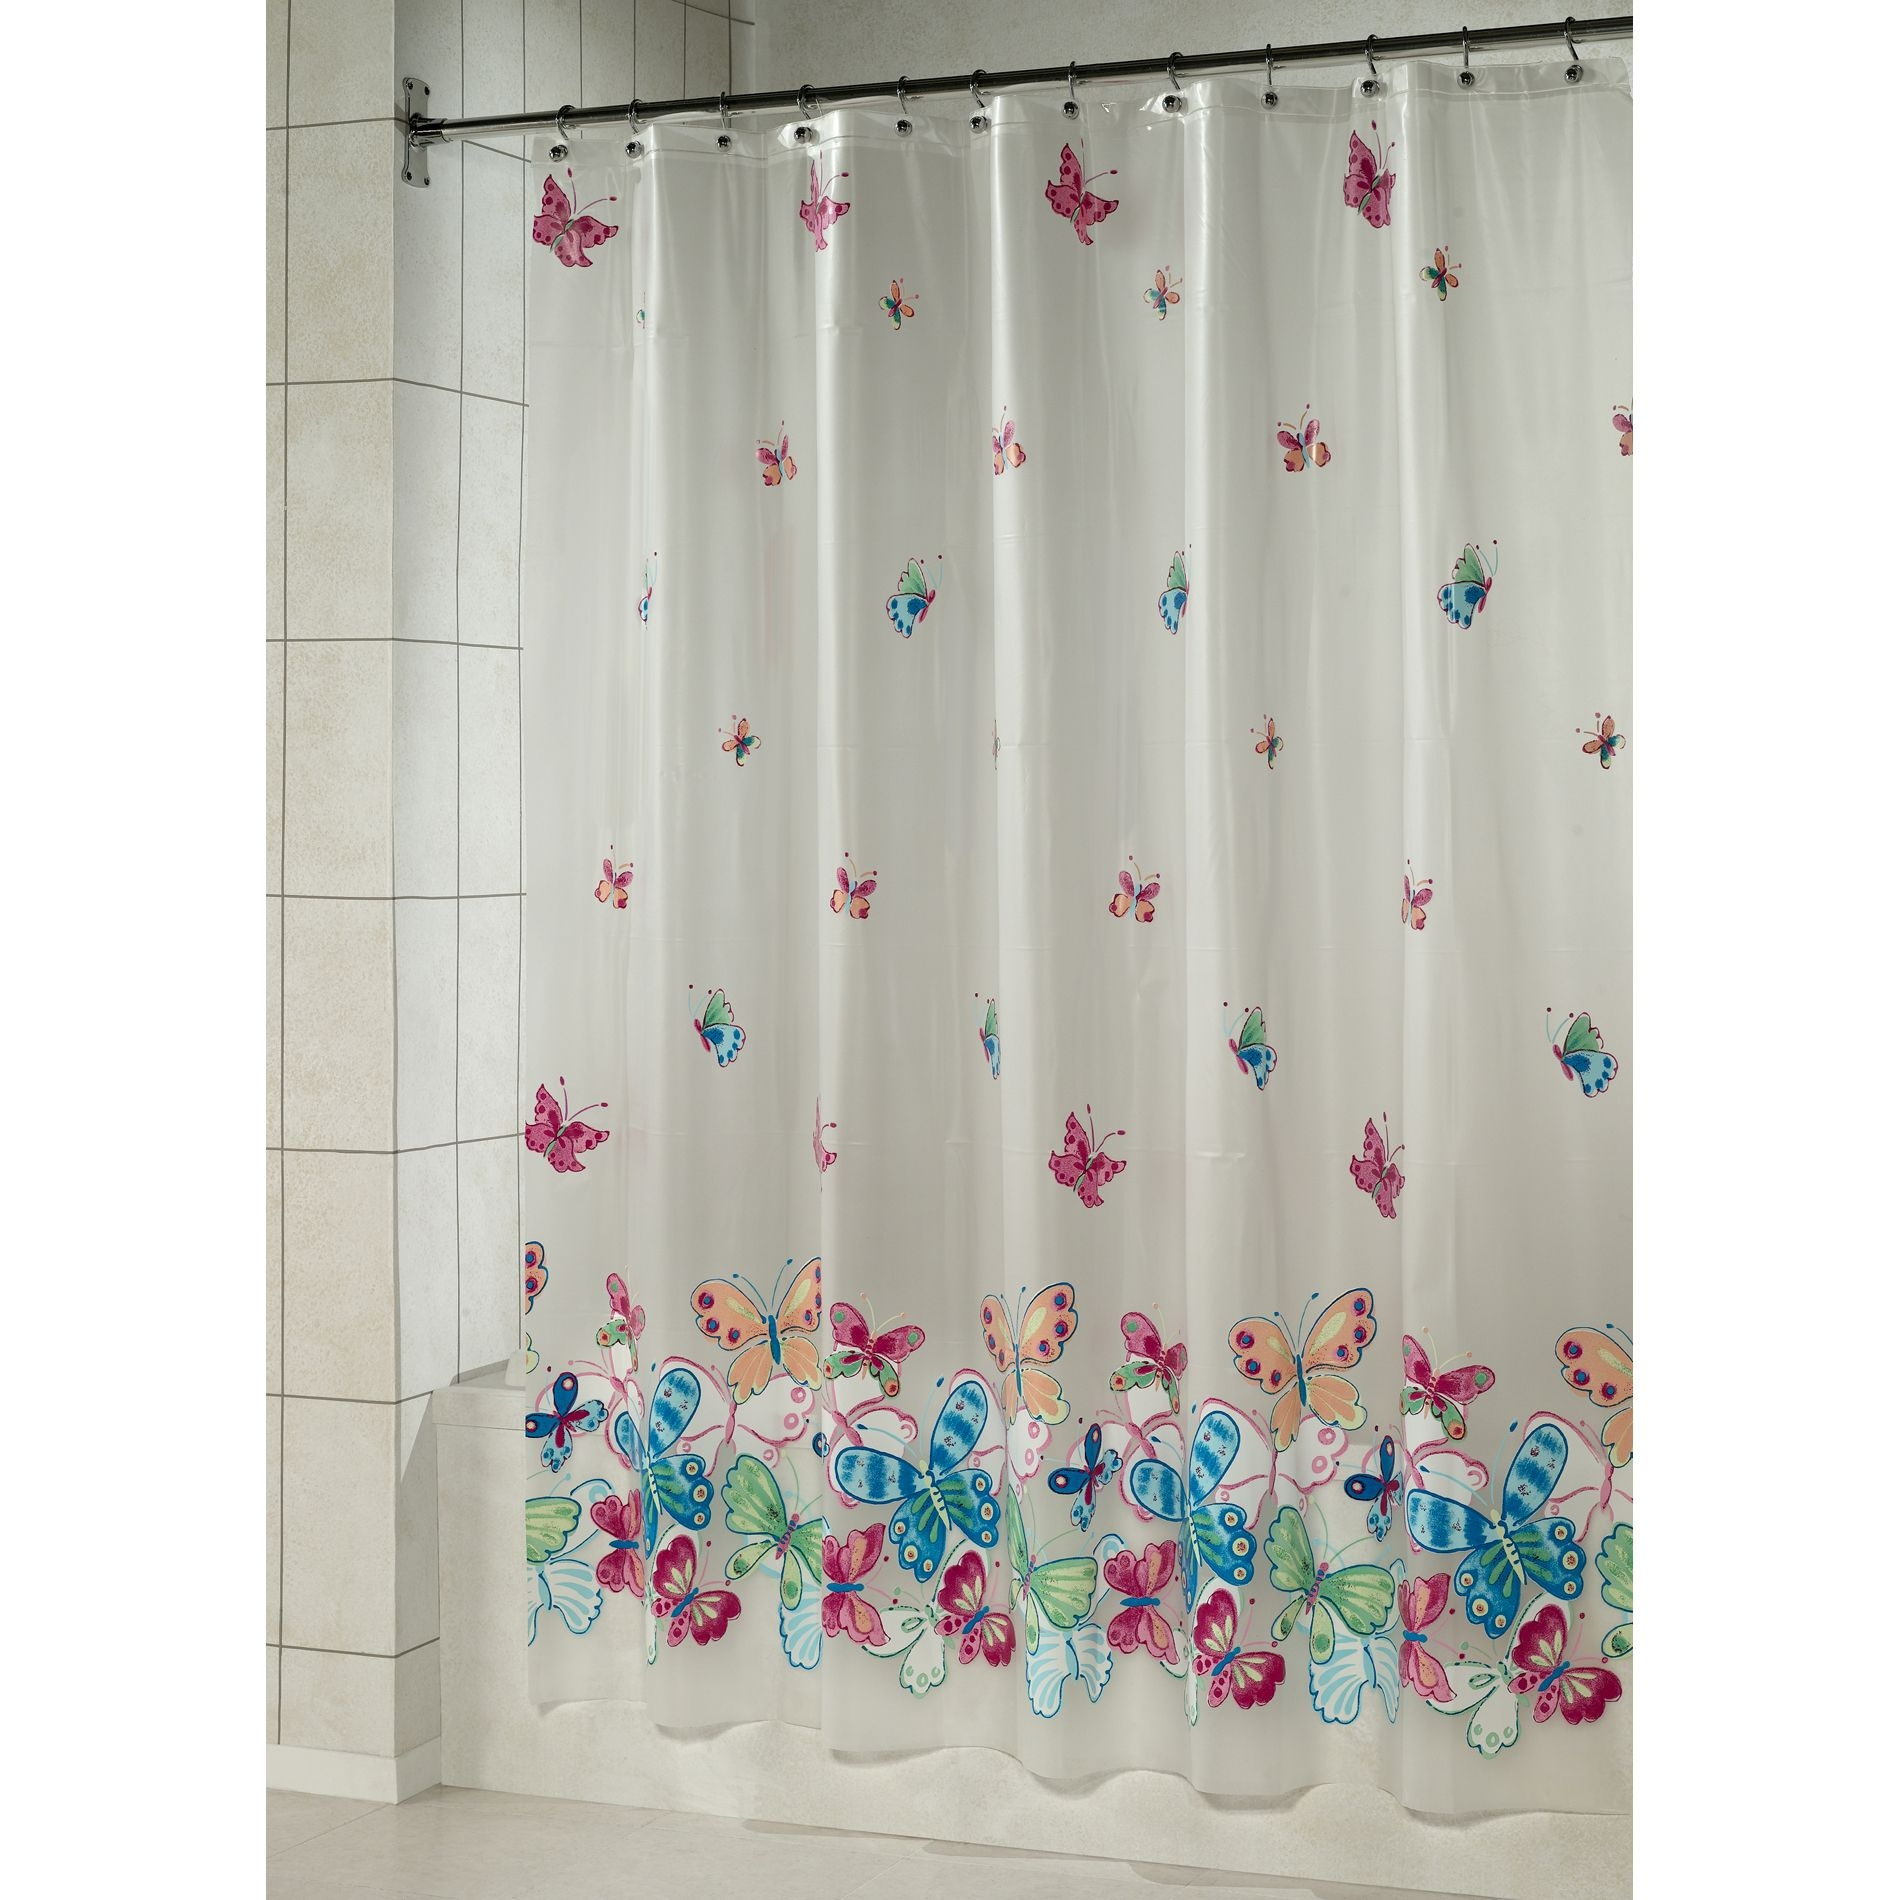 Wonderful Essential Home Shower Curtain Butterfly Border Vinyl Peva Home Bed